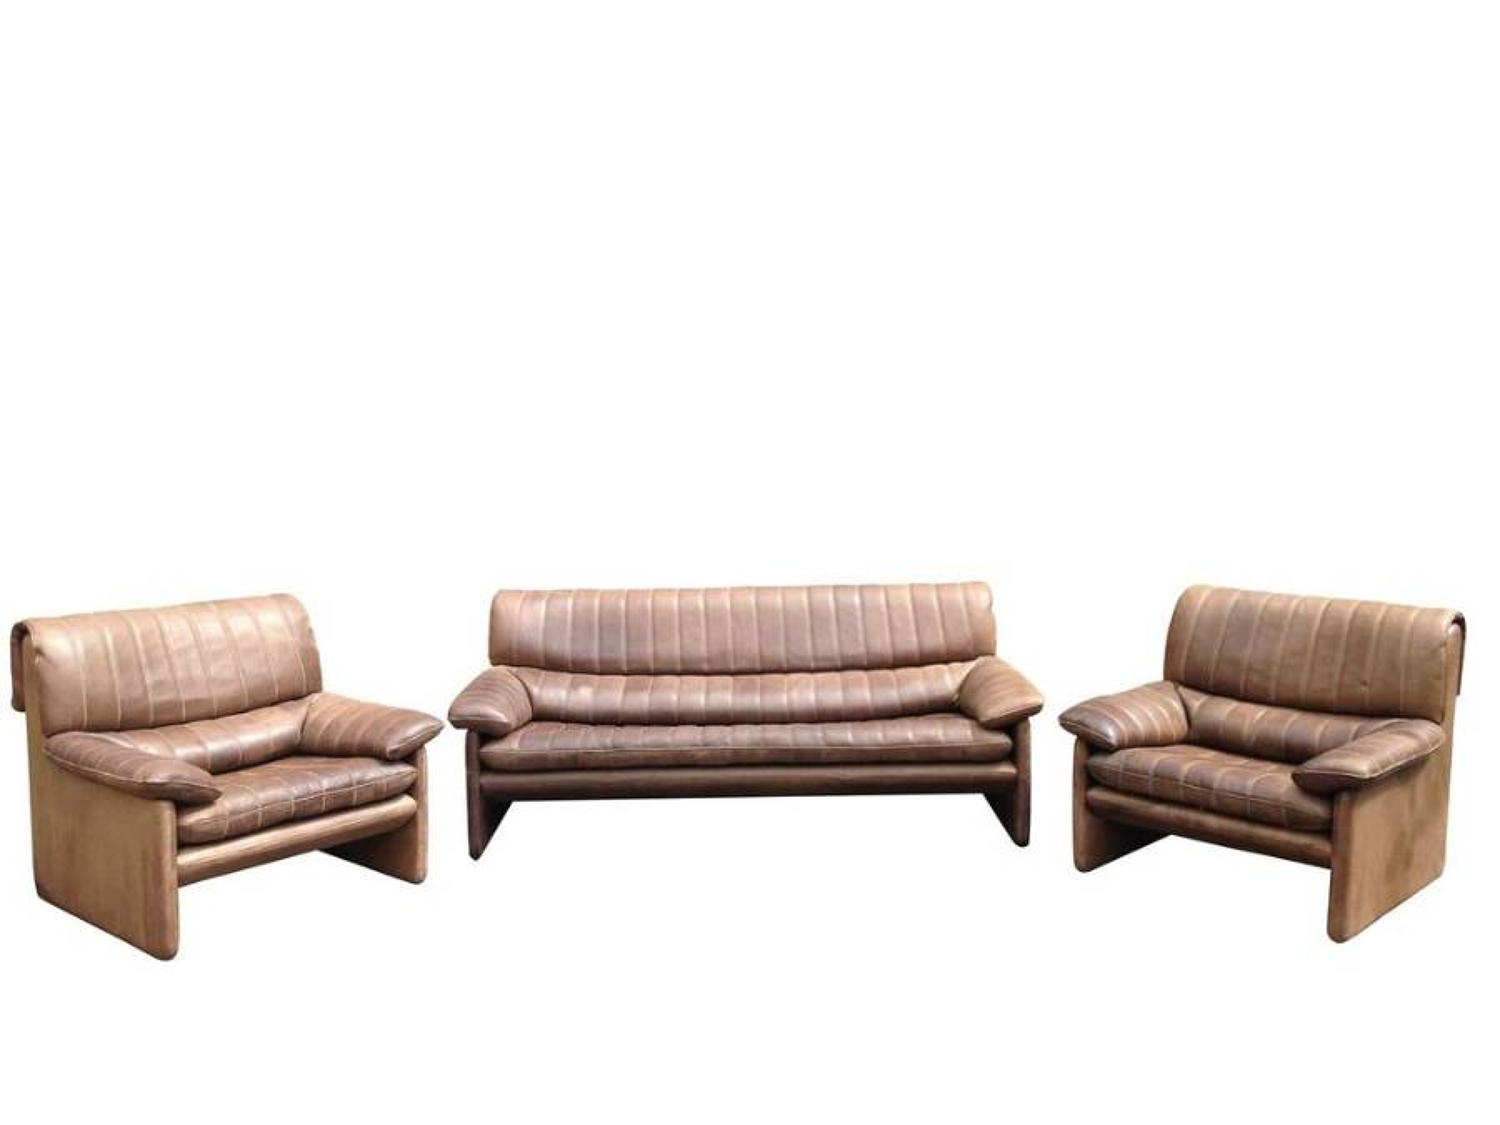 Leather sofa and two armchairs by De Sede